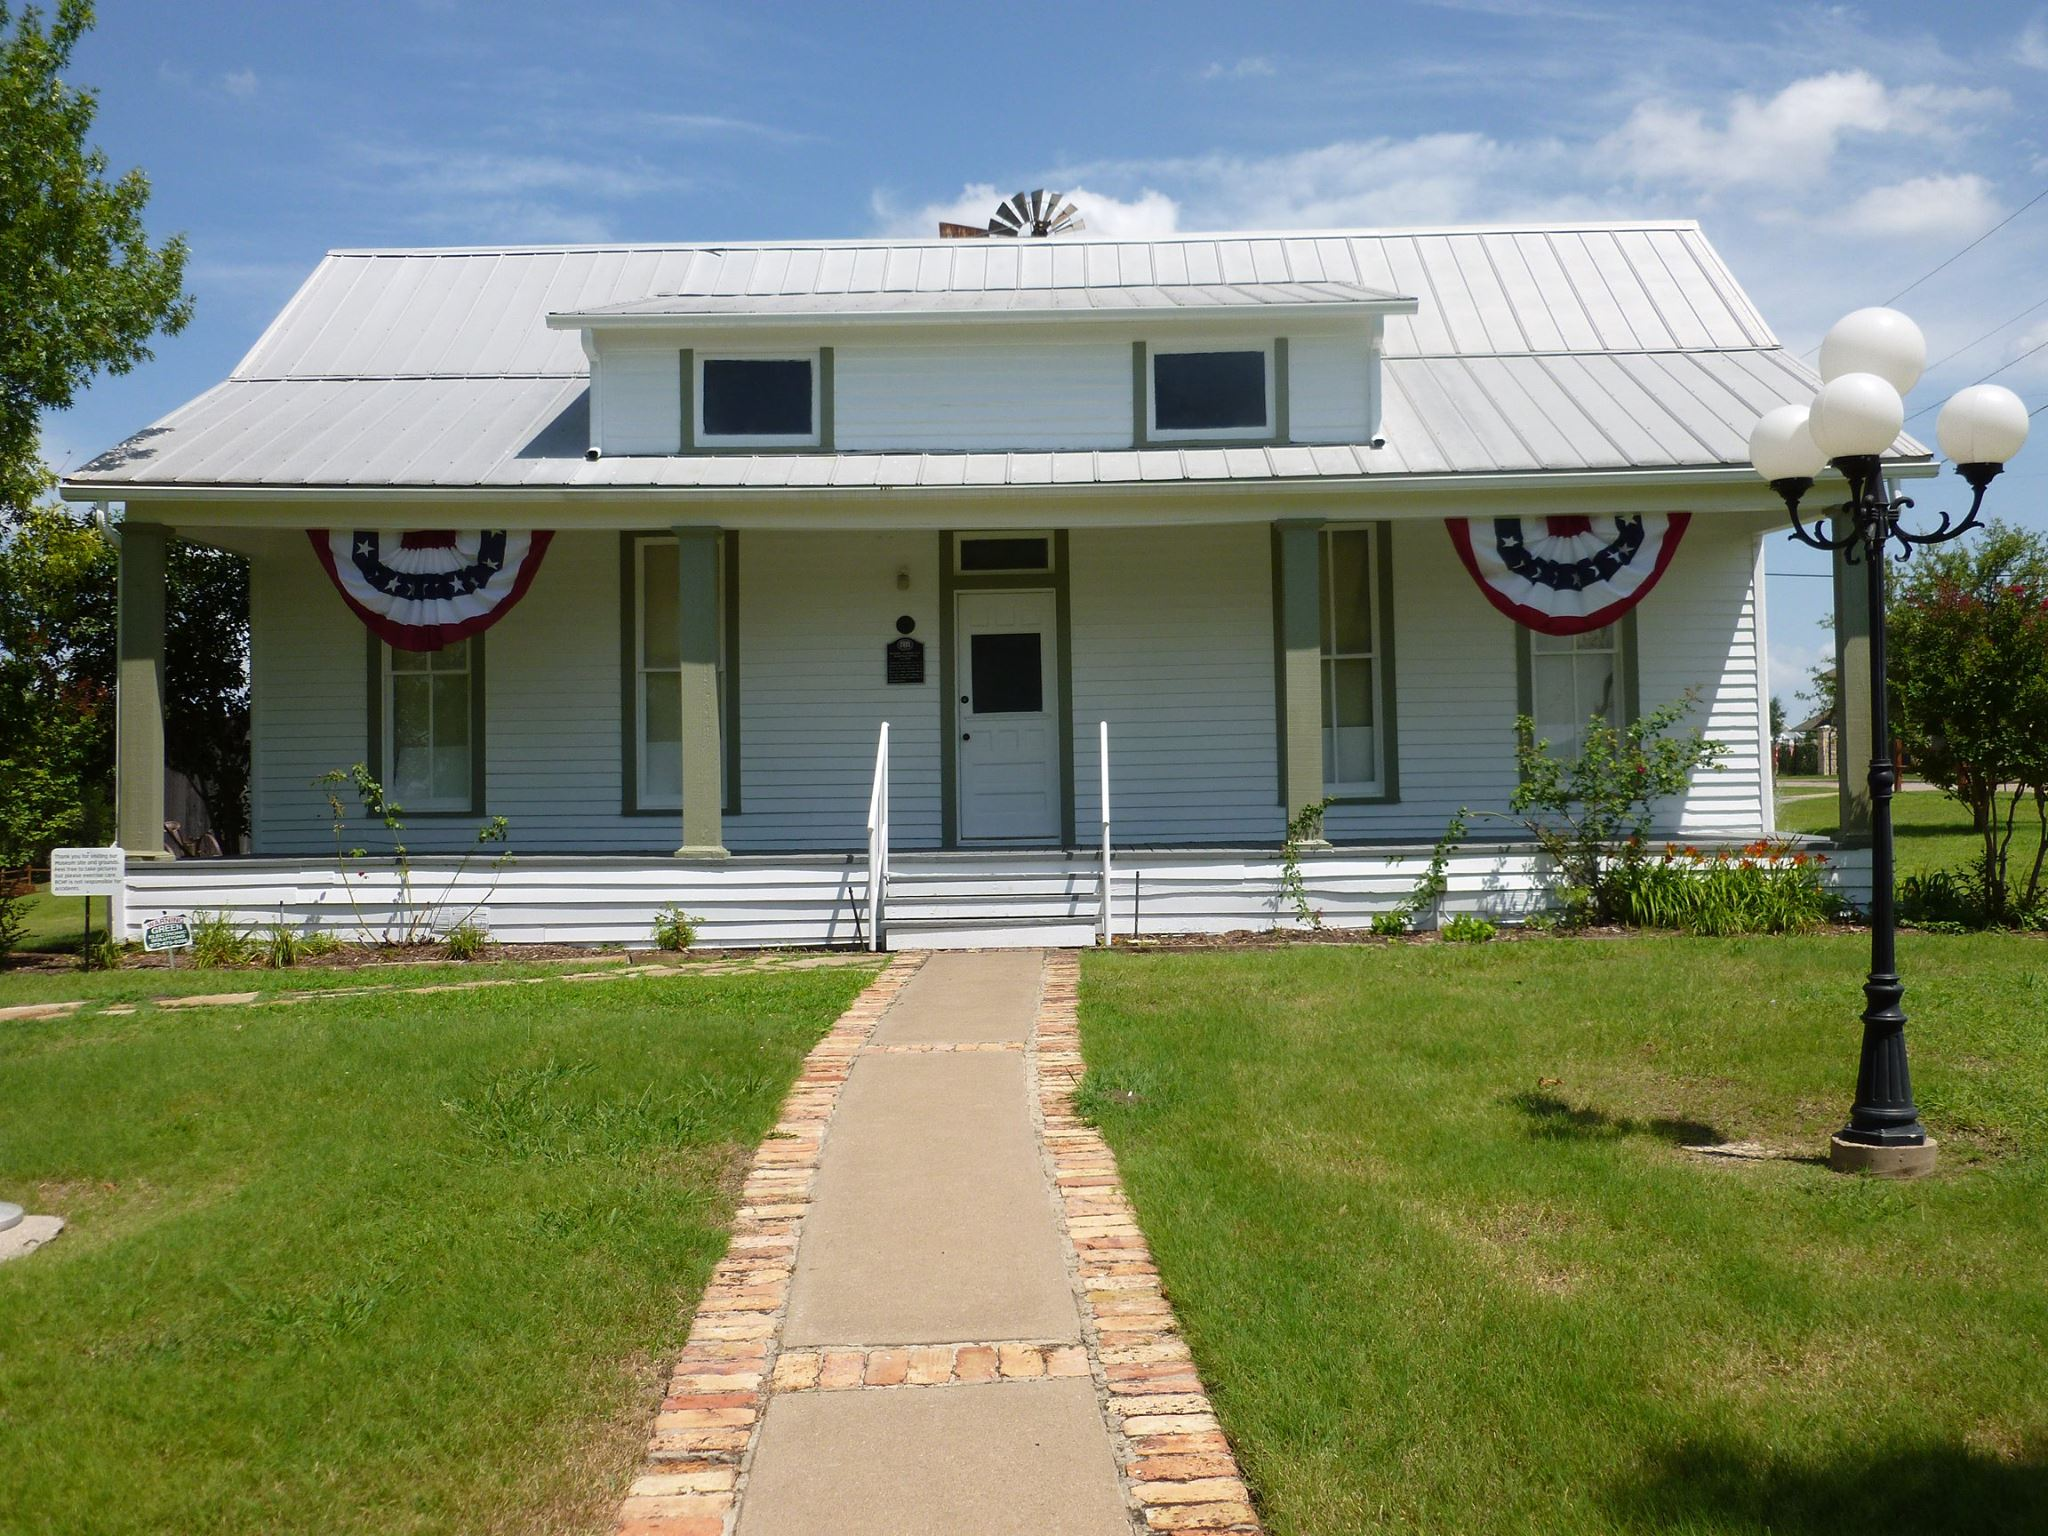 The Rockwall County Historical Foundation was established in 1978 and operates a small local history museum in this restored historical home that was built in 1850.